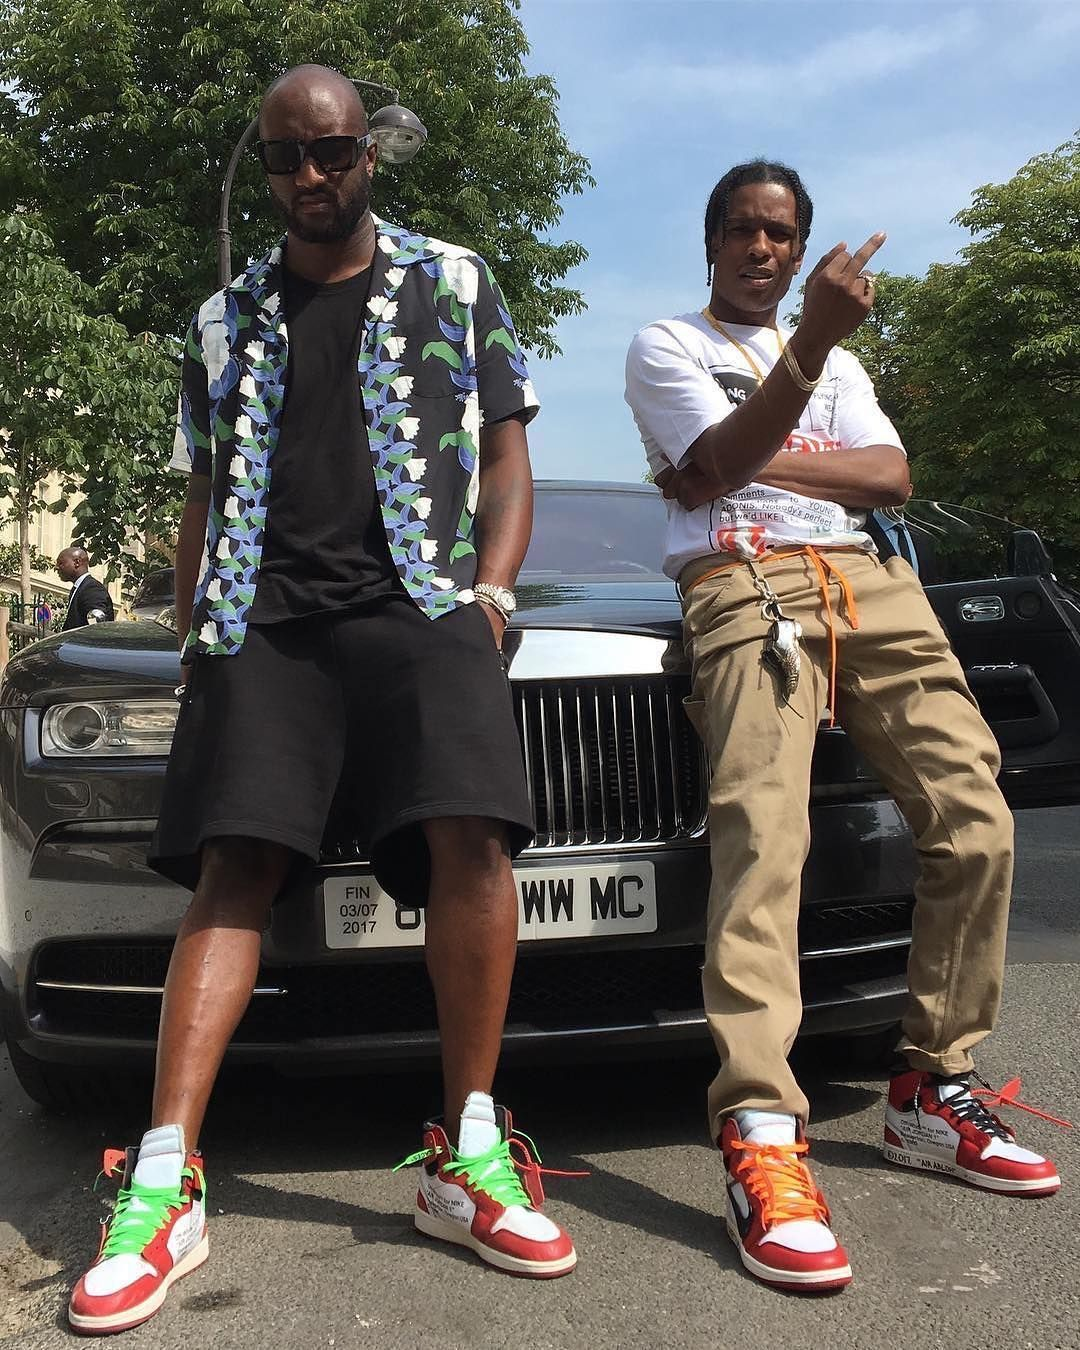 Virgil Abloh and ASAP Rocky Wear Off-White x Air Jordan 1 Sneakers in Paris